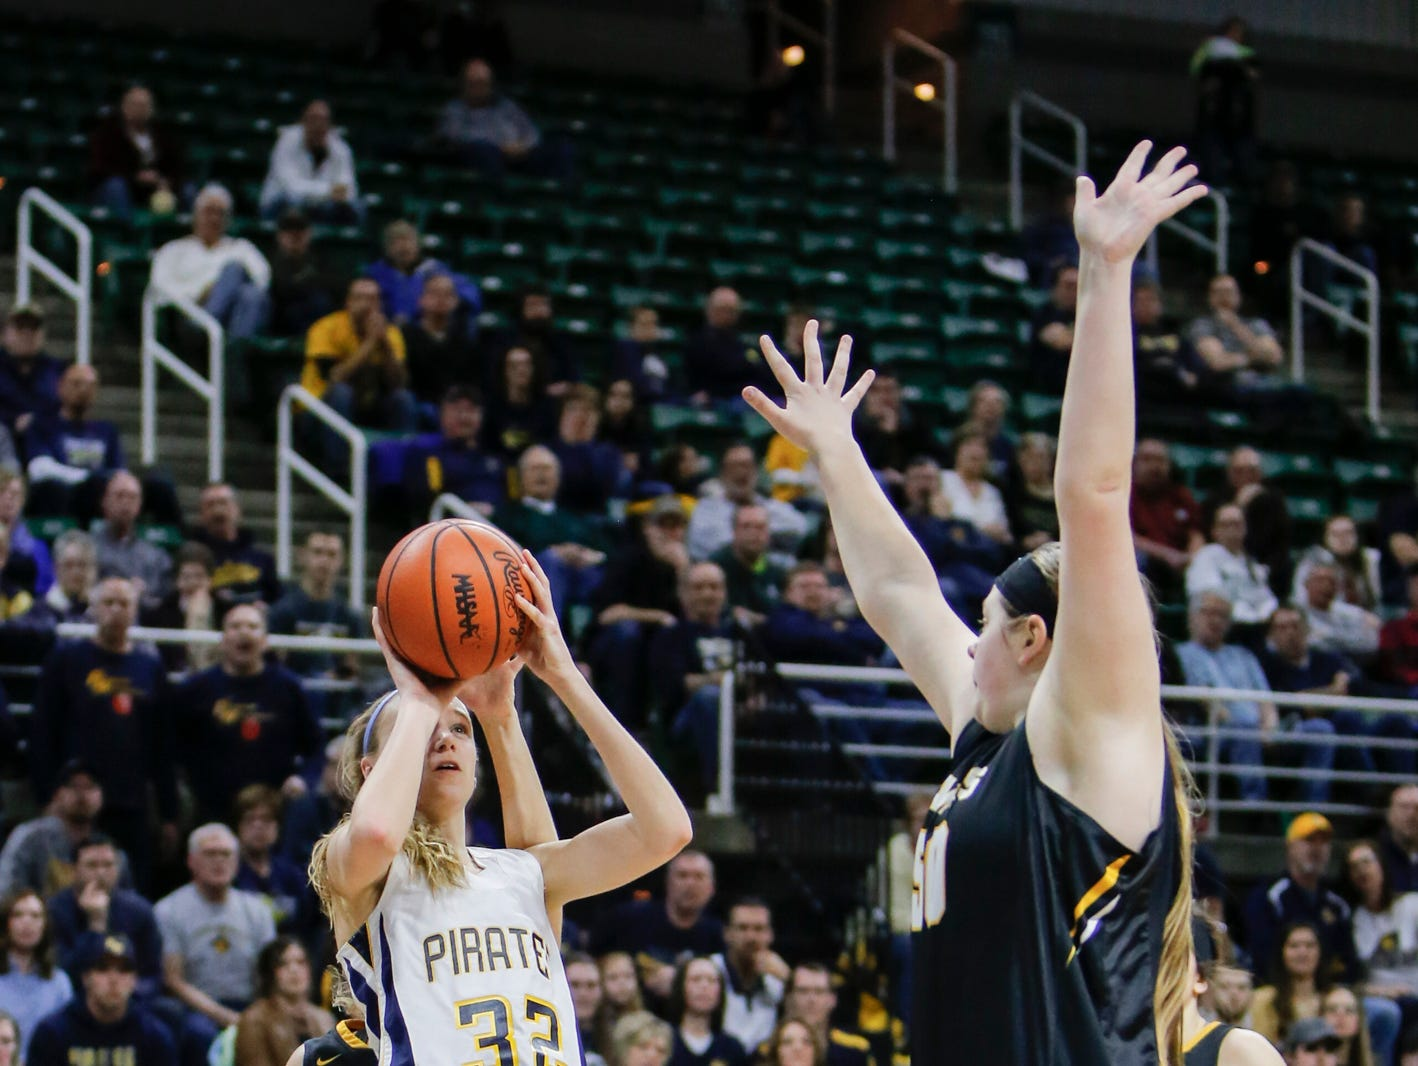 P-W's Emily Spitzley connects from the paint against Maple City Glen Lake Thursday, March 16, 2017, during the Class B Semifinal at the Breslin in East Lansing. P-W won 64-51.[MATTHEW DAE SMITH | Lansing State Journal]